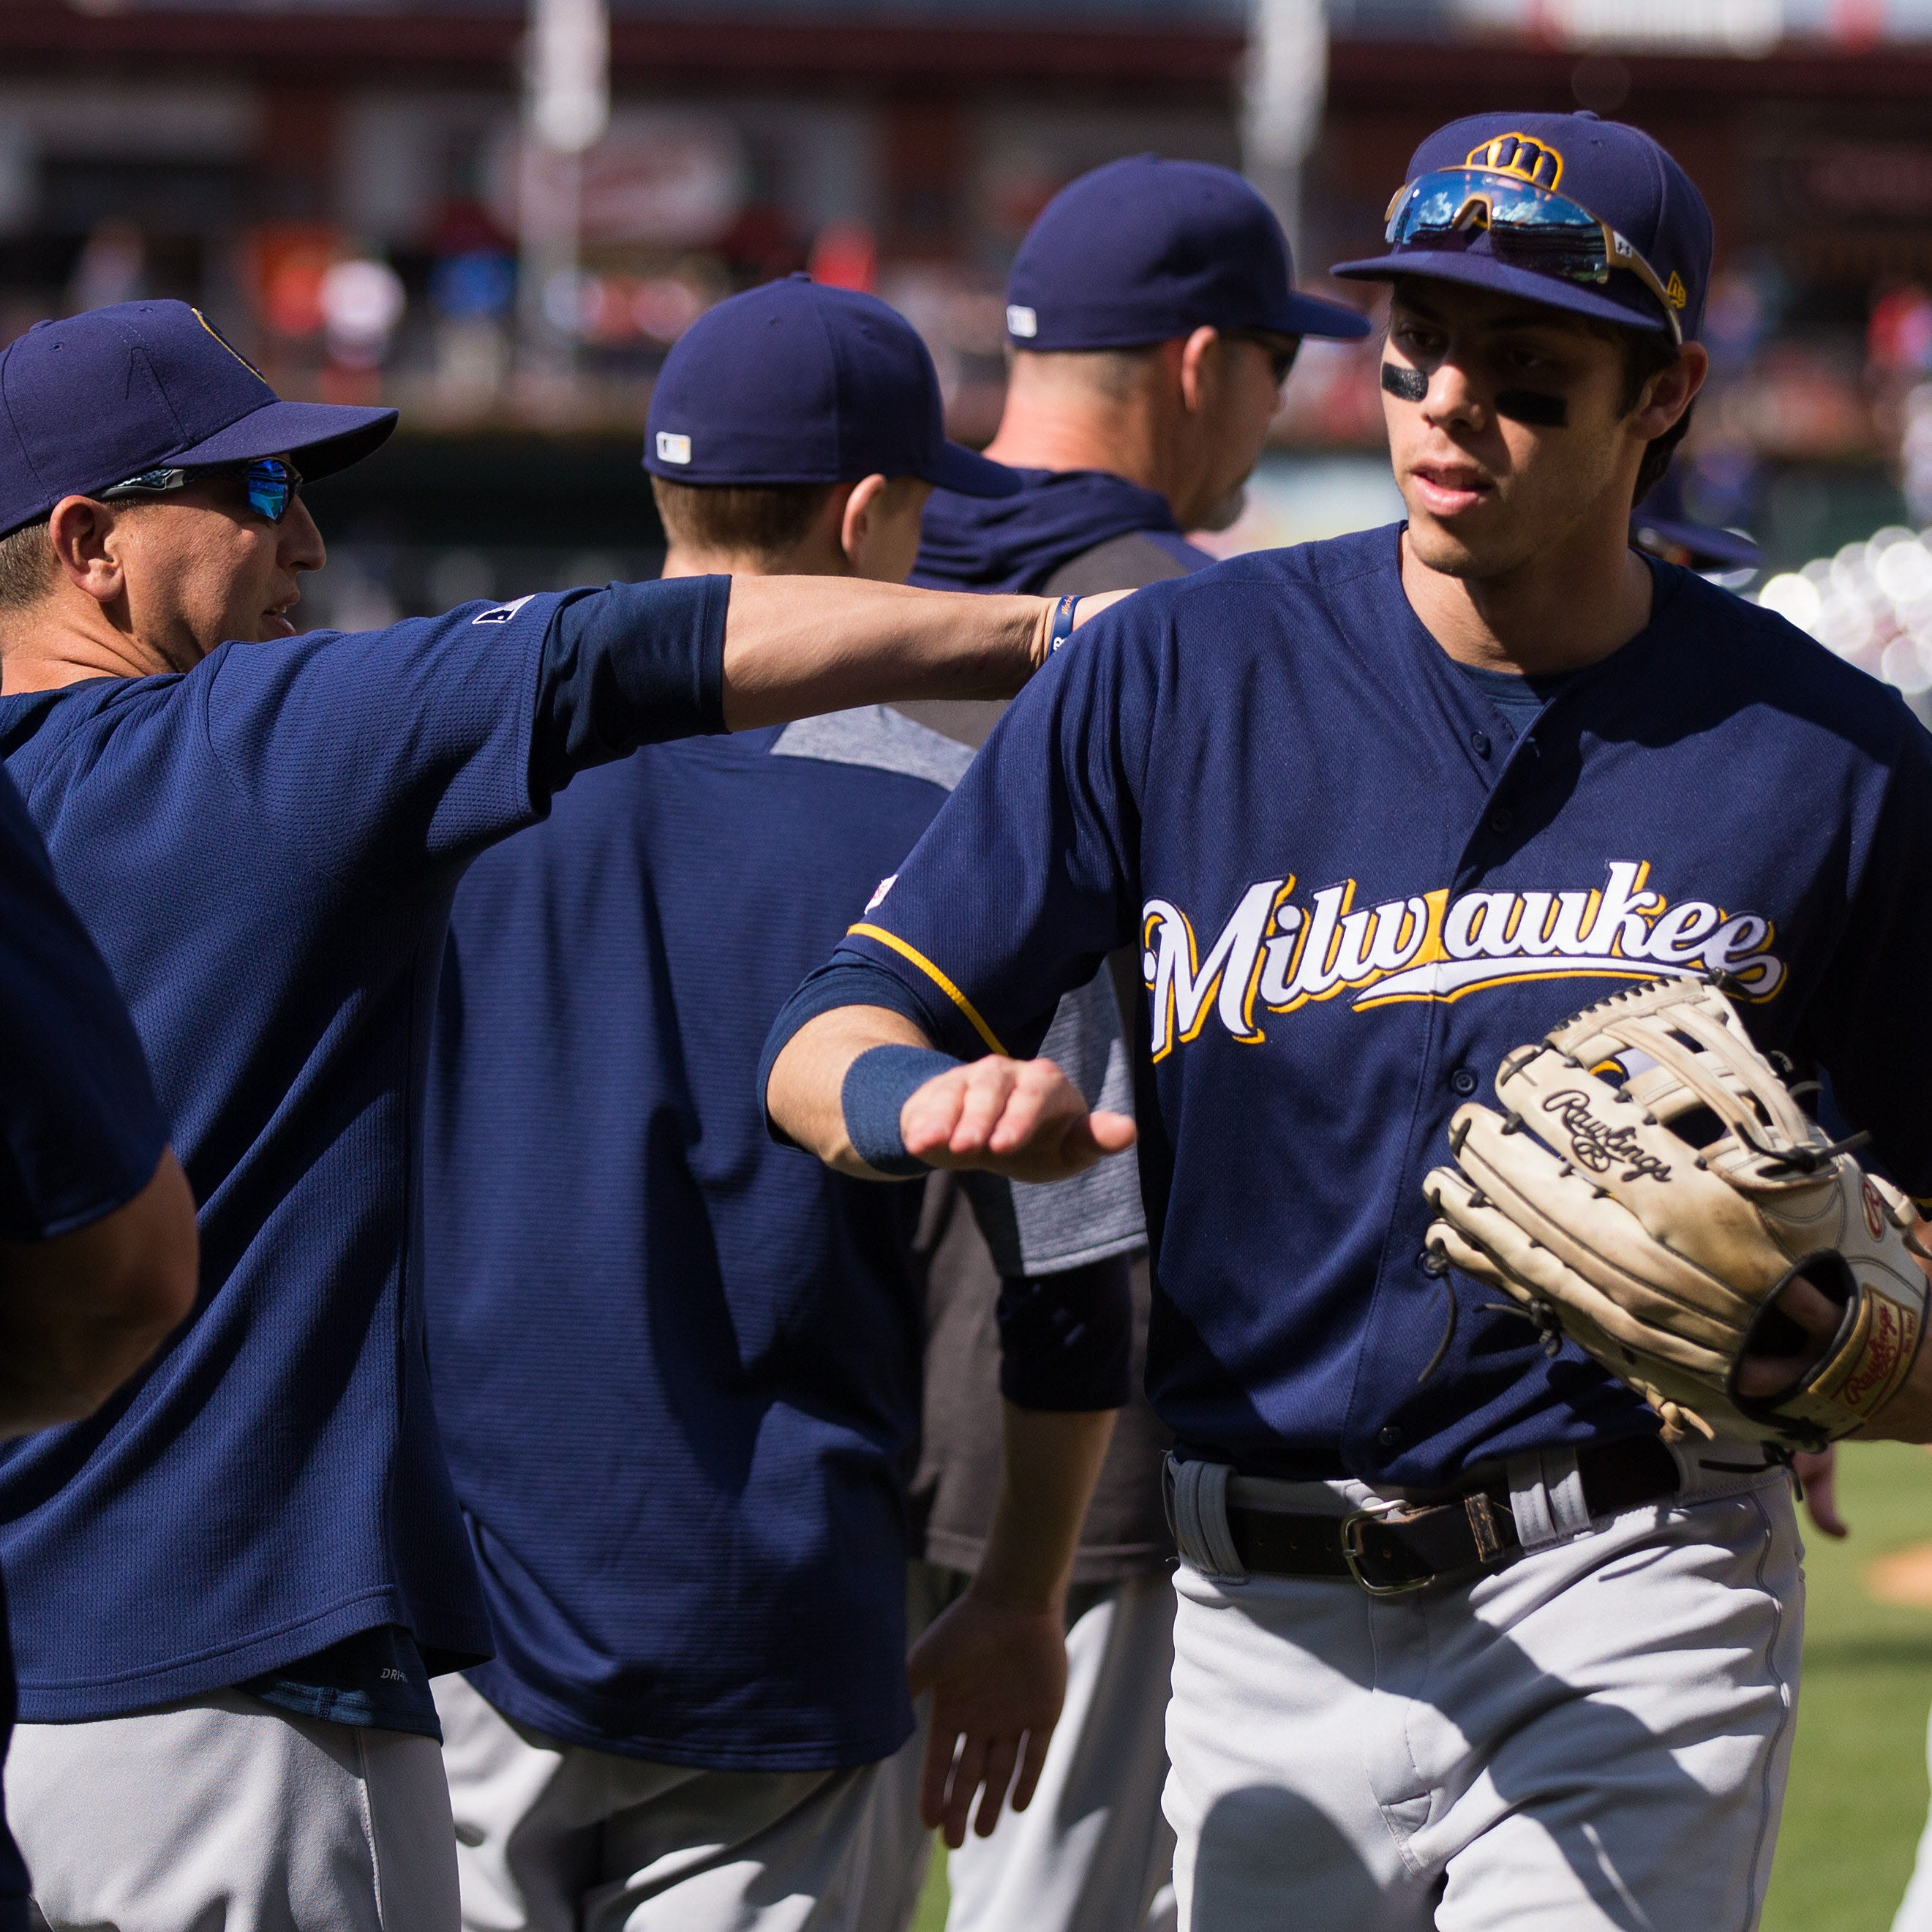 Christian Yelich has been scratched from starting lineup after experiencing back spasms